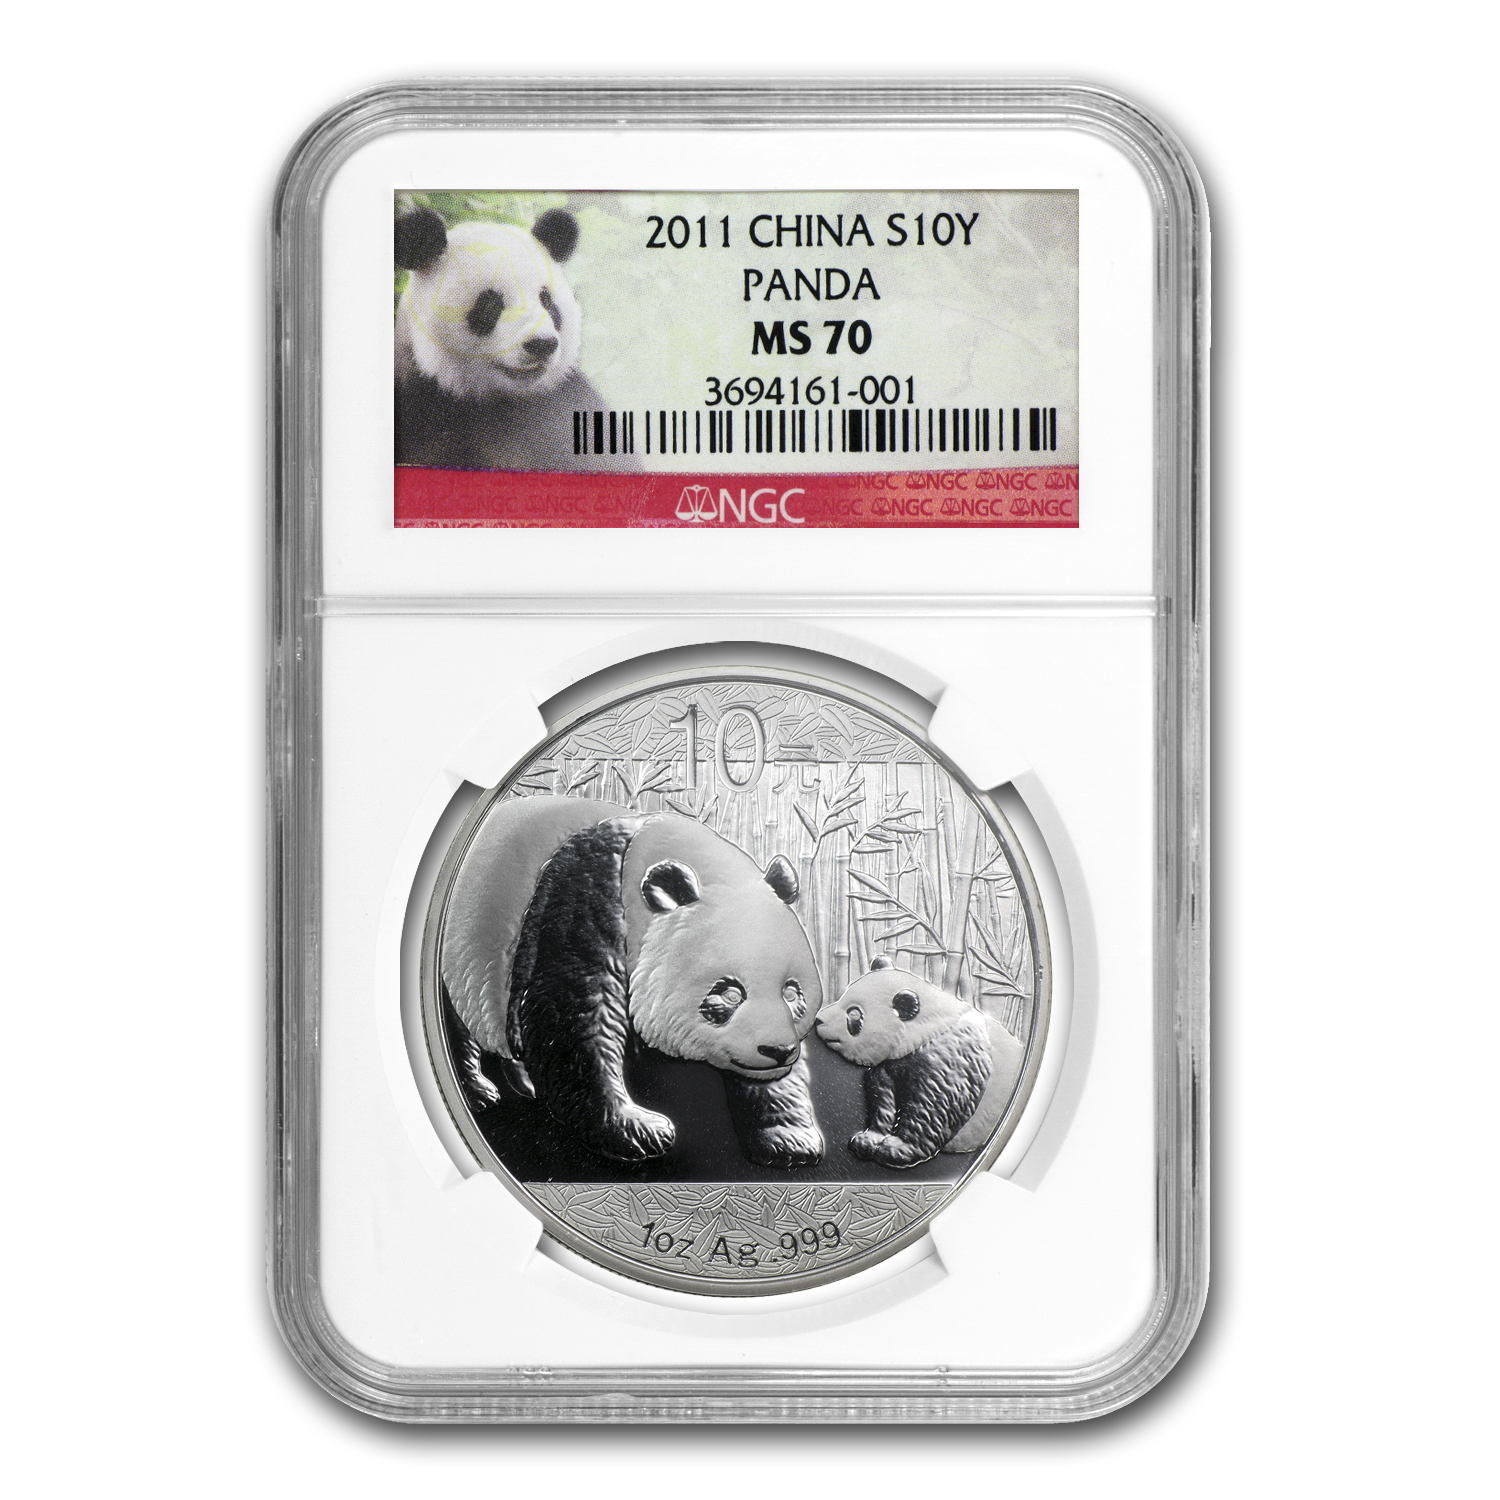 2011 1 oz Silver Chinese Panda MS-70 NGC